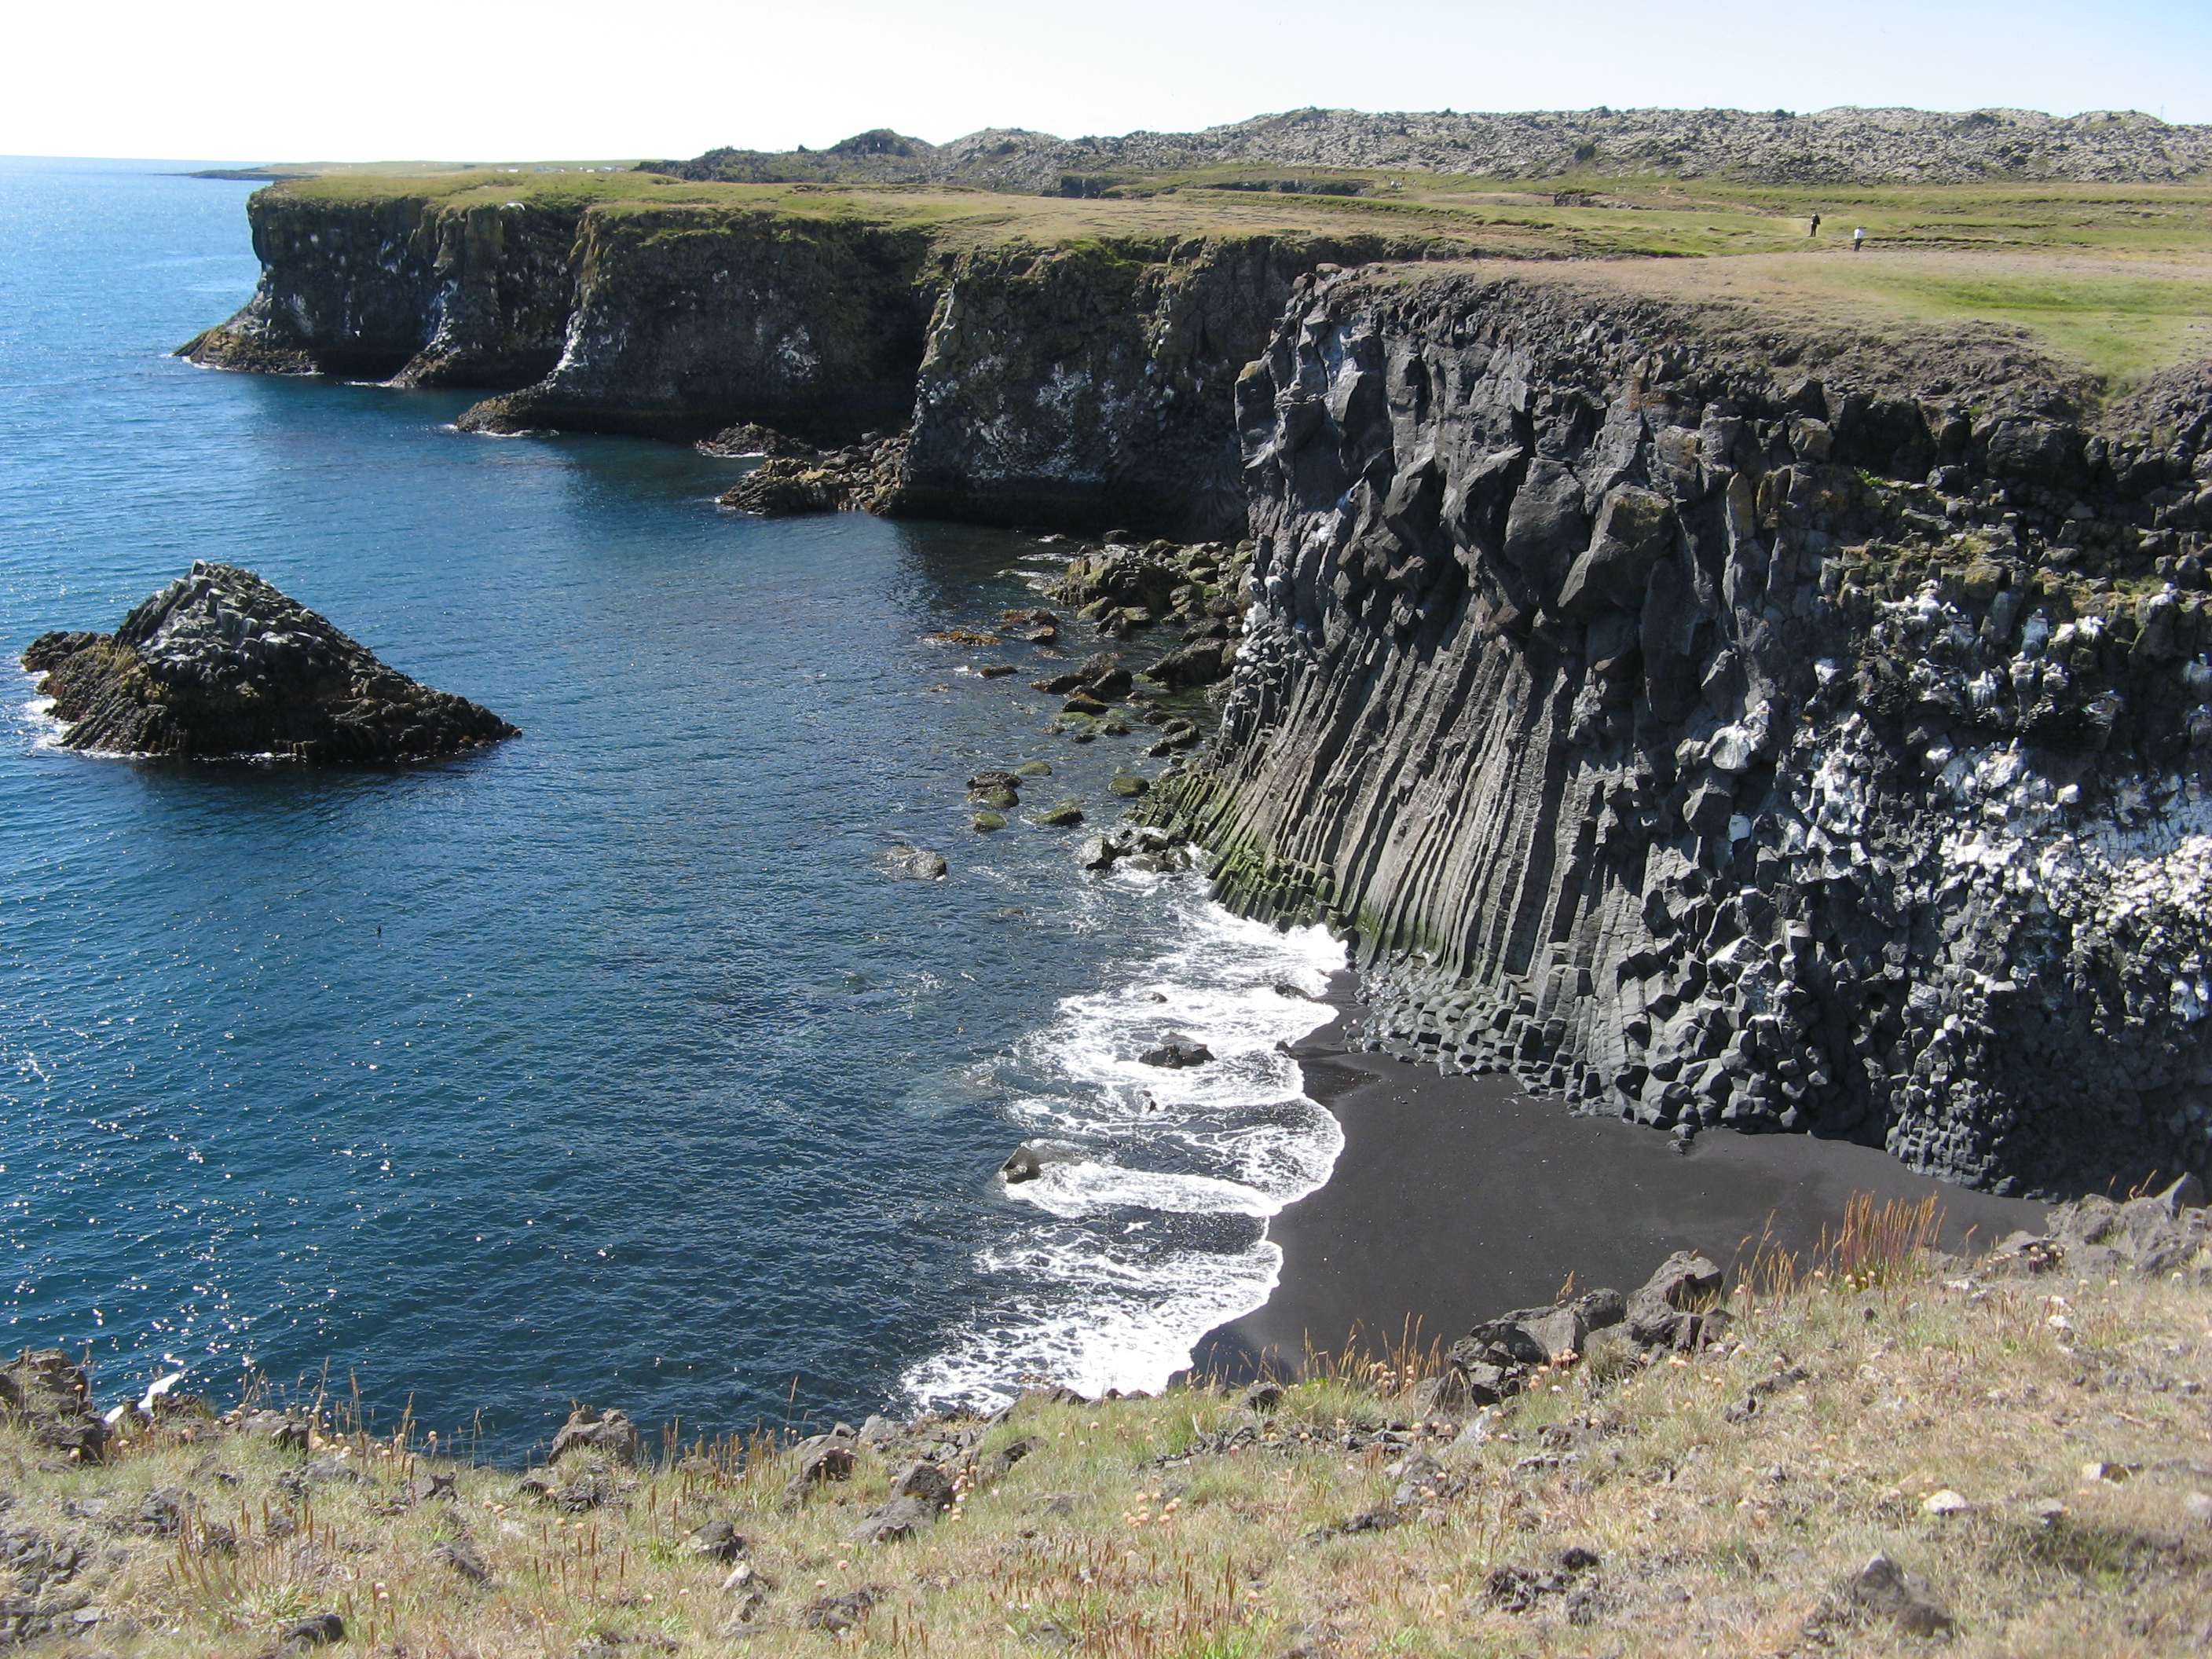 File:cliffs And Shoreline in